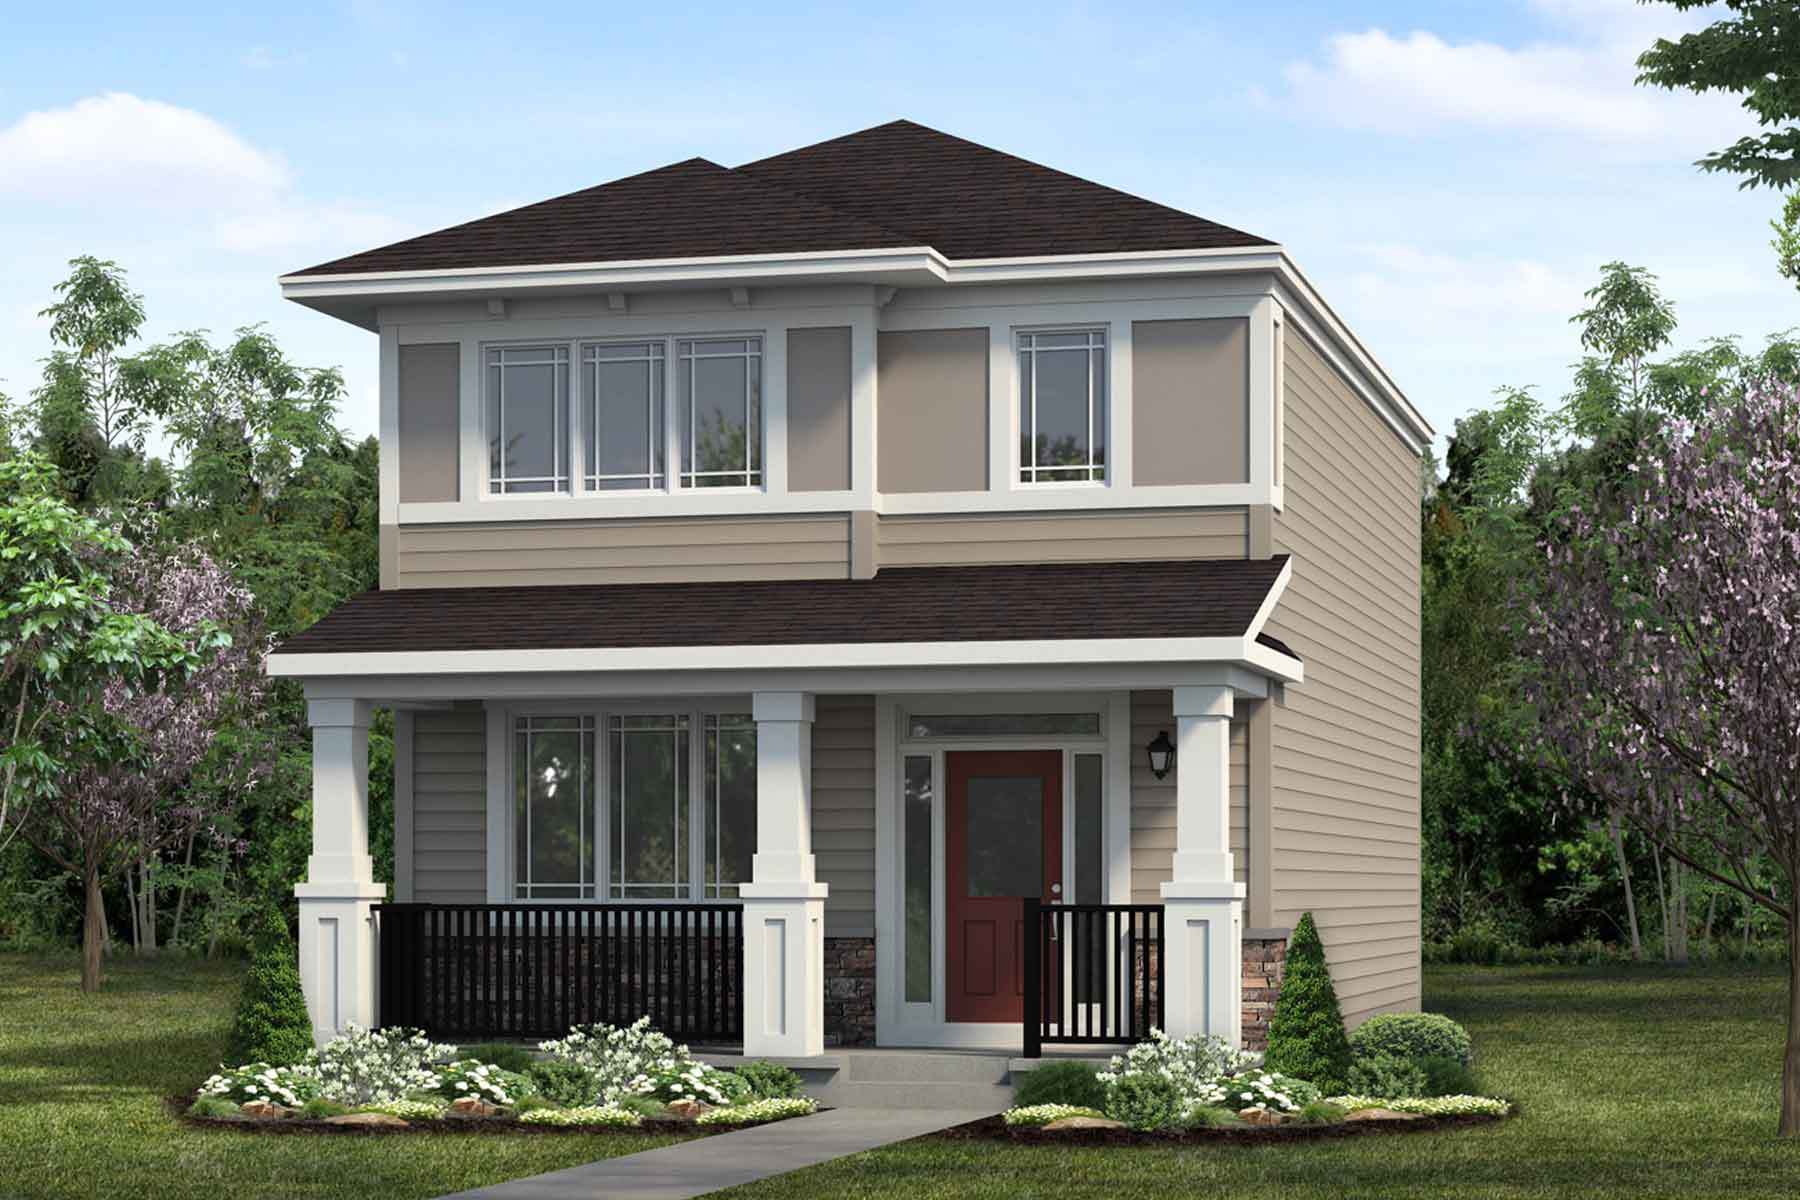 Caspian Plan Elevation Front at Cityscape in Calgary Alberta by Mattamy Homes